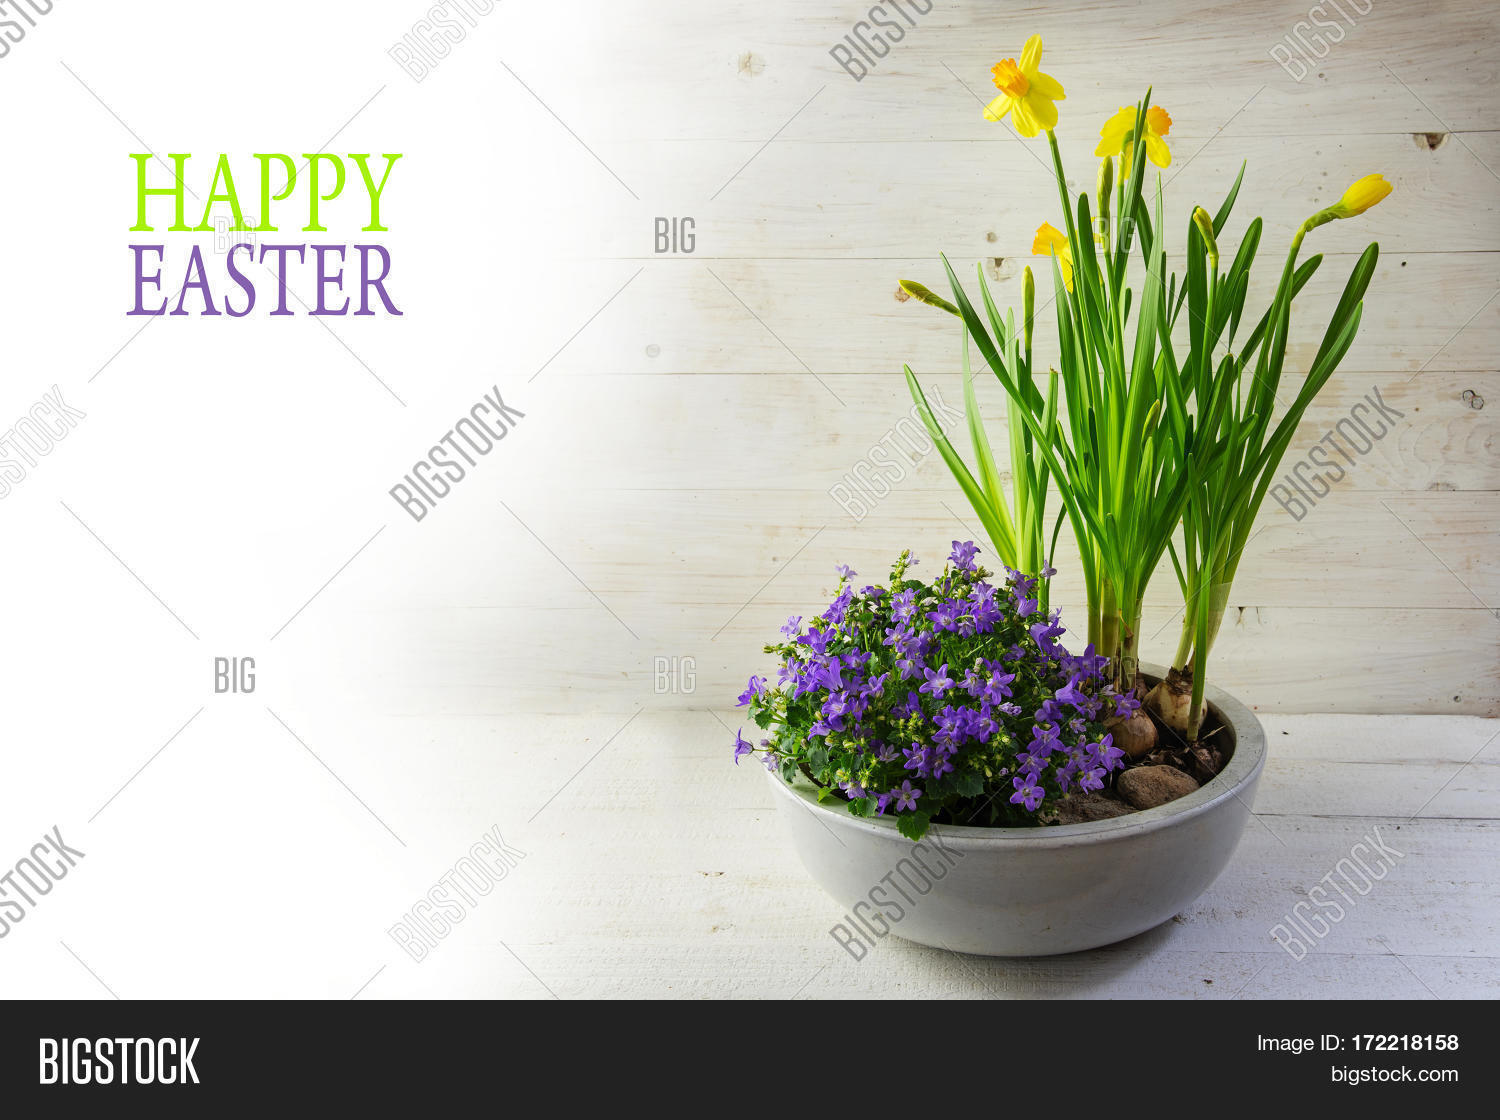 Potted Spring Flowers Image Photo Free Trial Bigstock